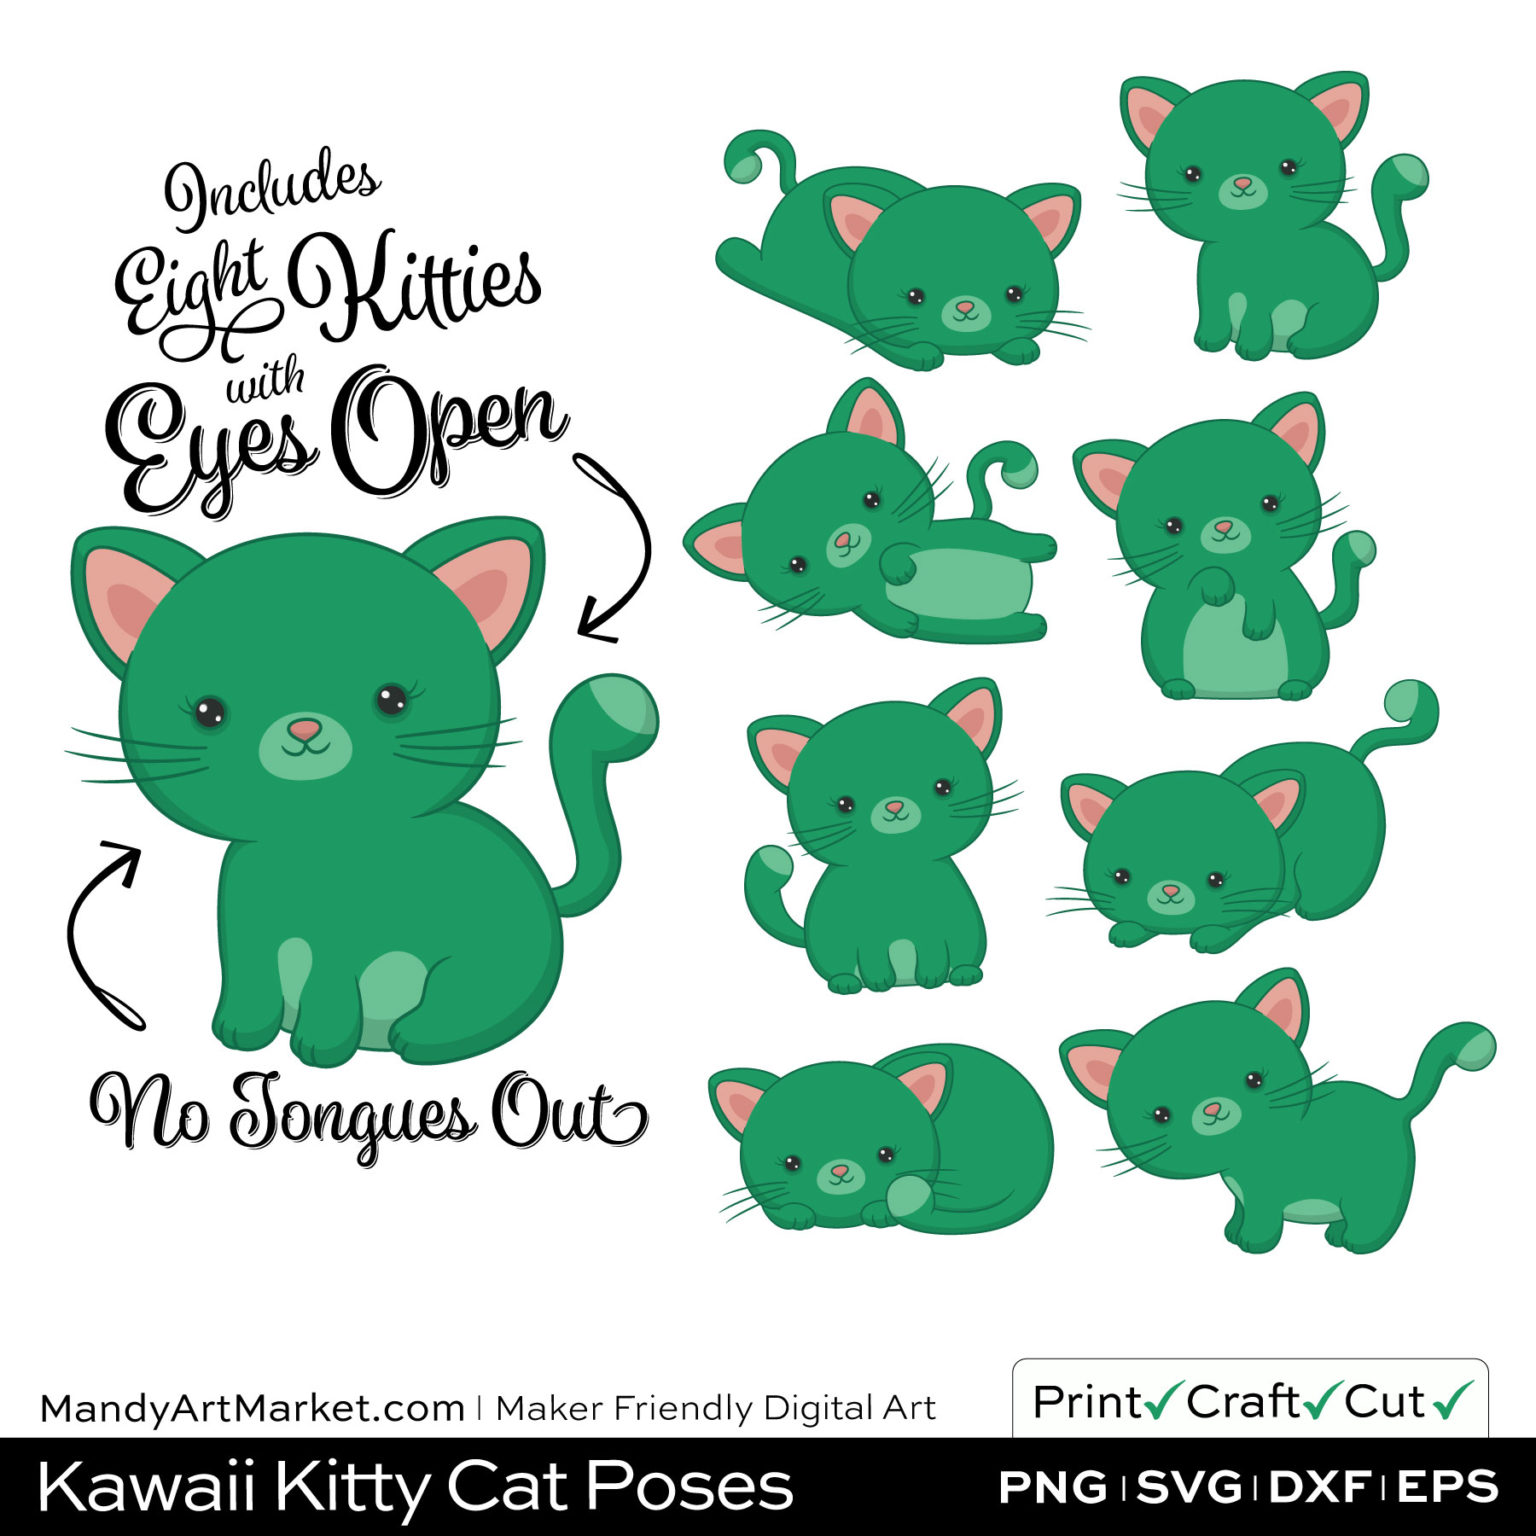 Jade Green Kawaii Kitty Cat Poses Clipart on Wood Background